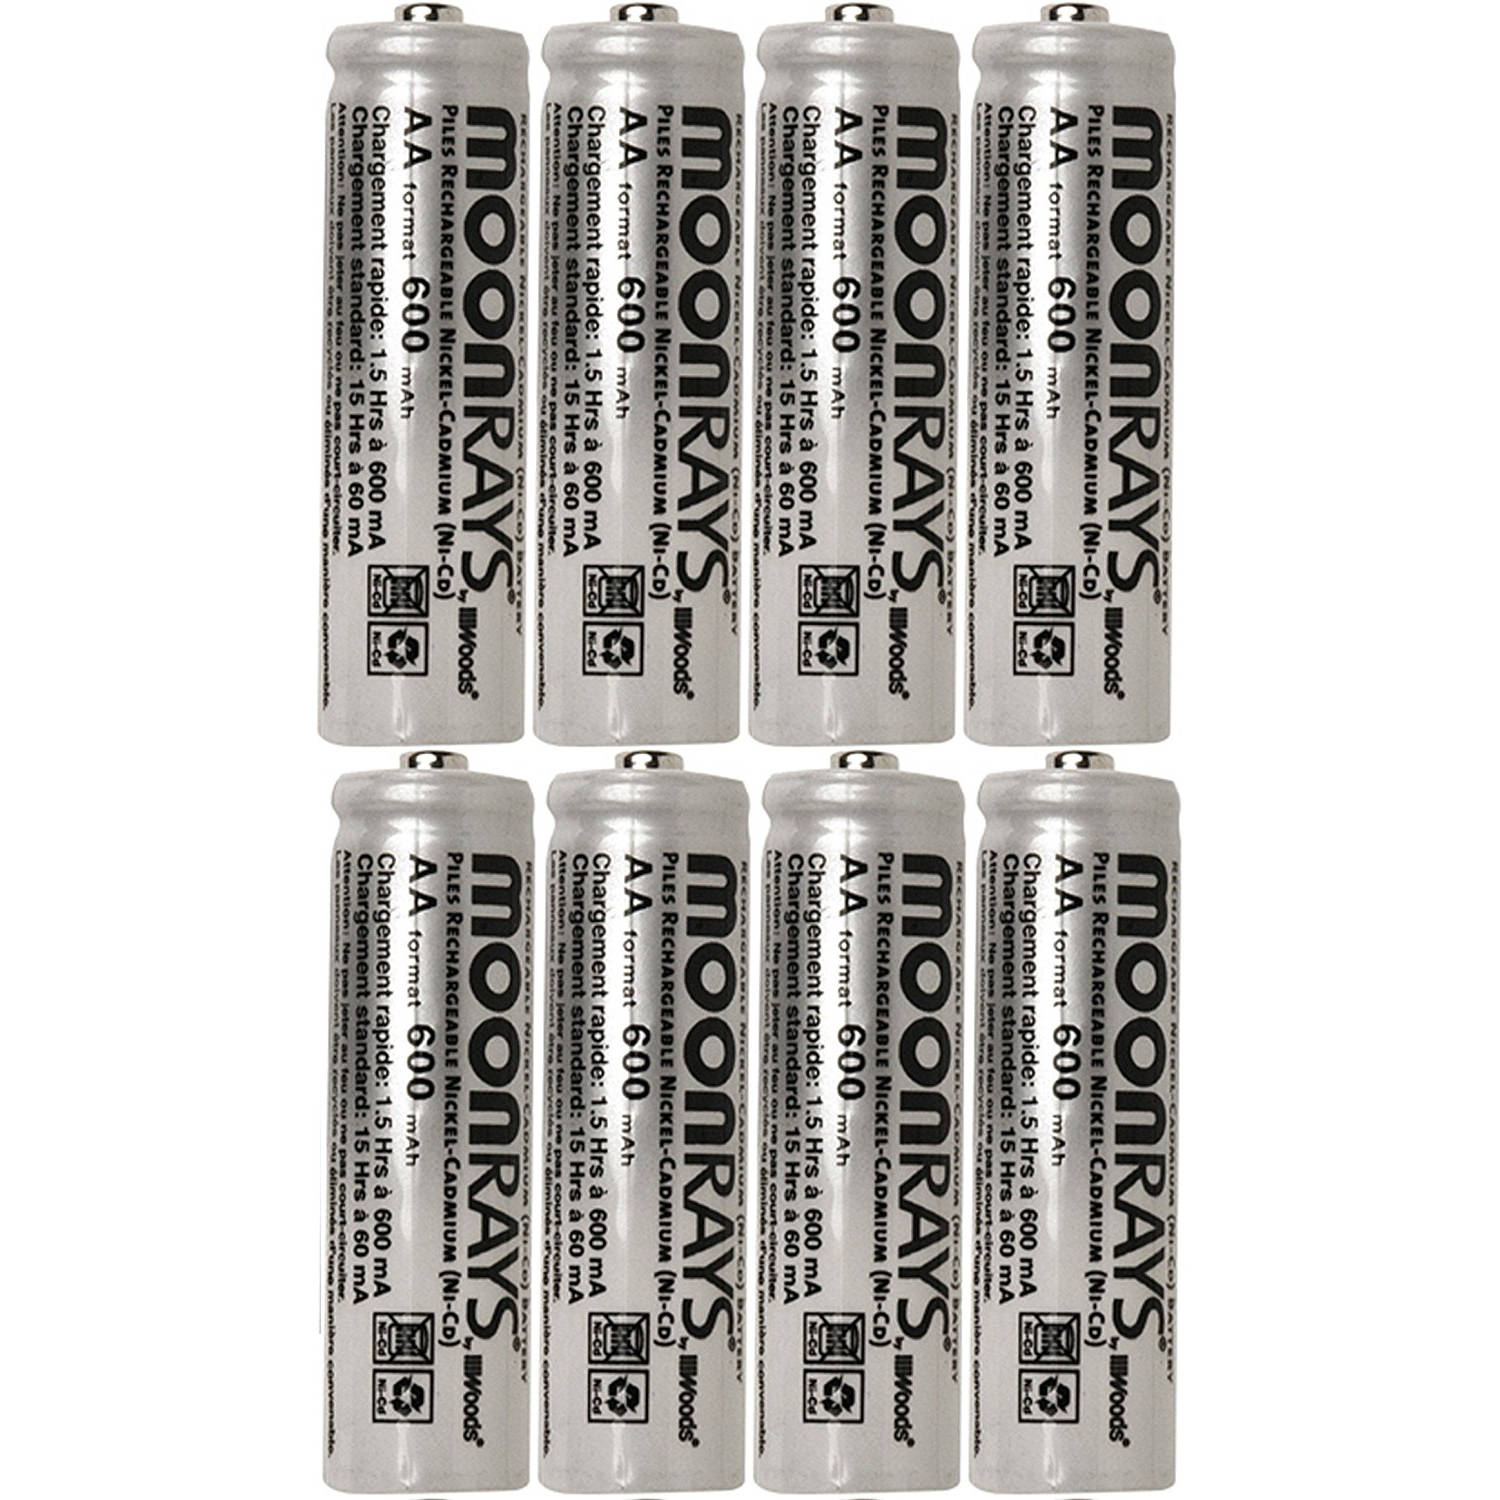 Moonrays 47740SP Rechargeable NiCd AA Batteries for Solar Powered Units, 600-mAh, 8-Pack by Moonrays